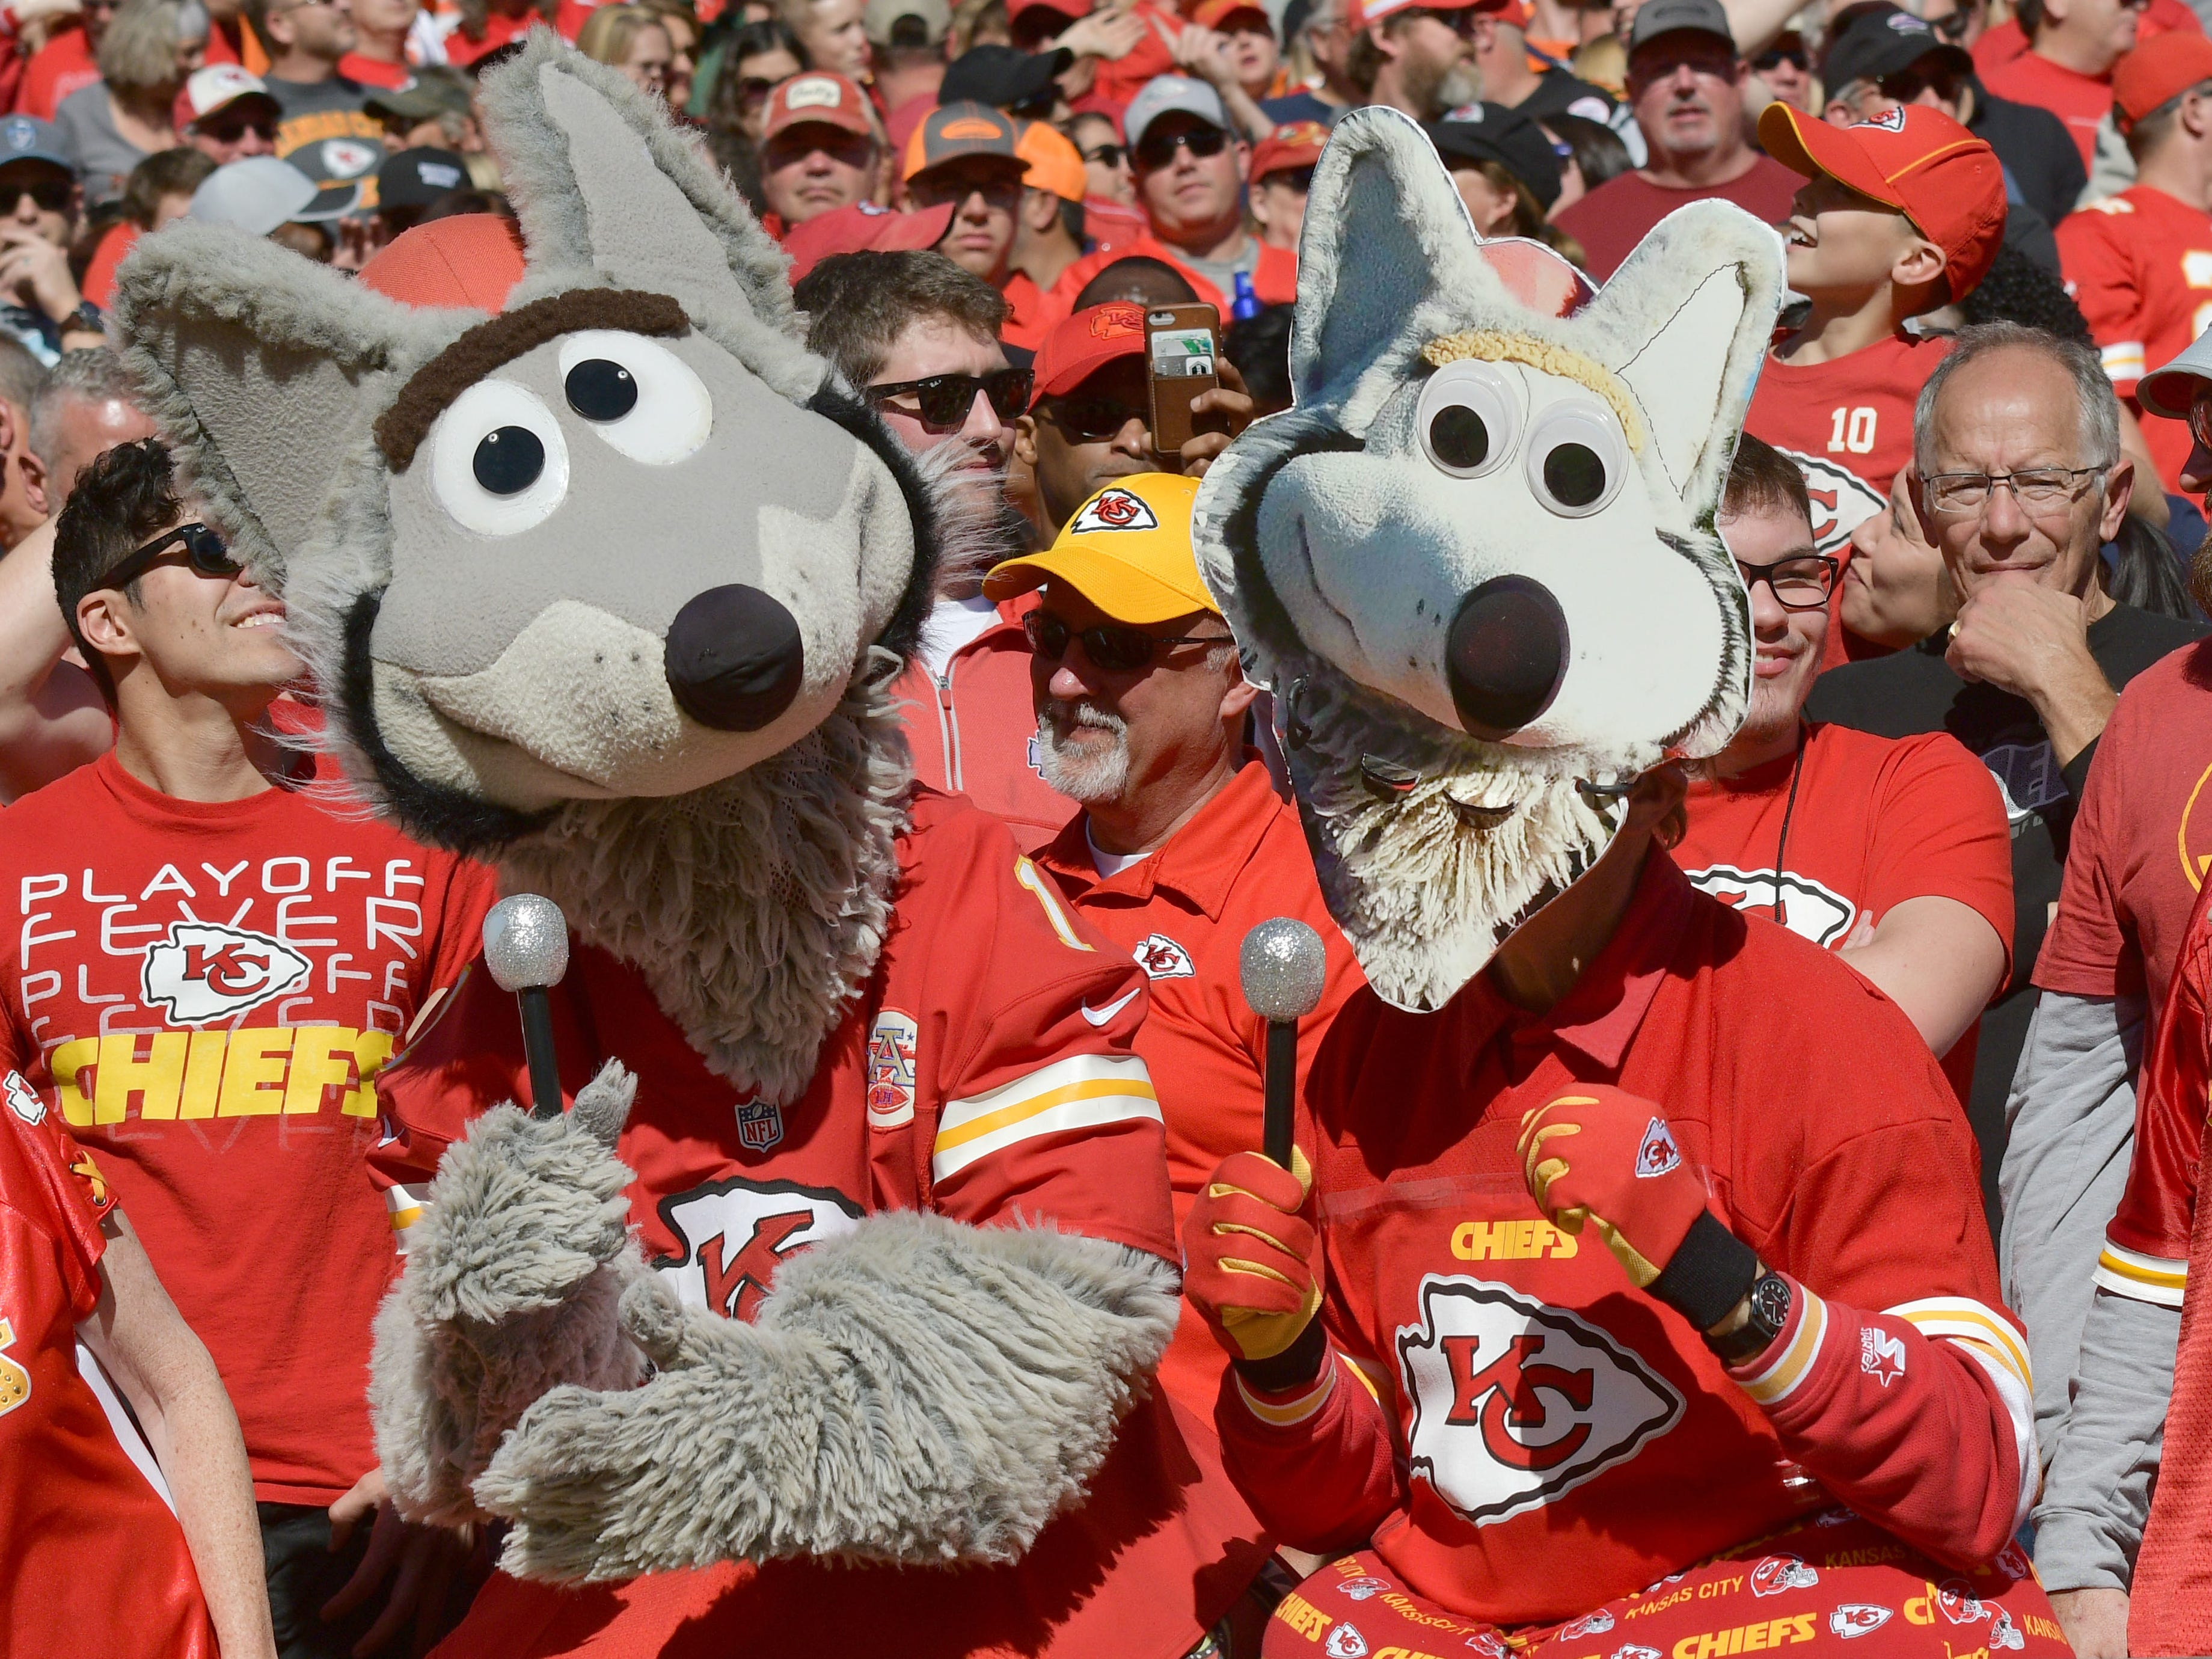 The Kansas City Chiefs mascot KC Wolf sings with a fan in a wolf costume during the second half against the Denver Broncos at Arrowhead Stadium.